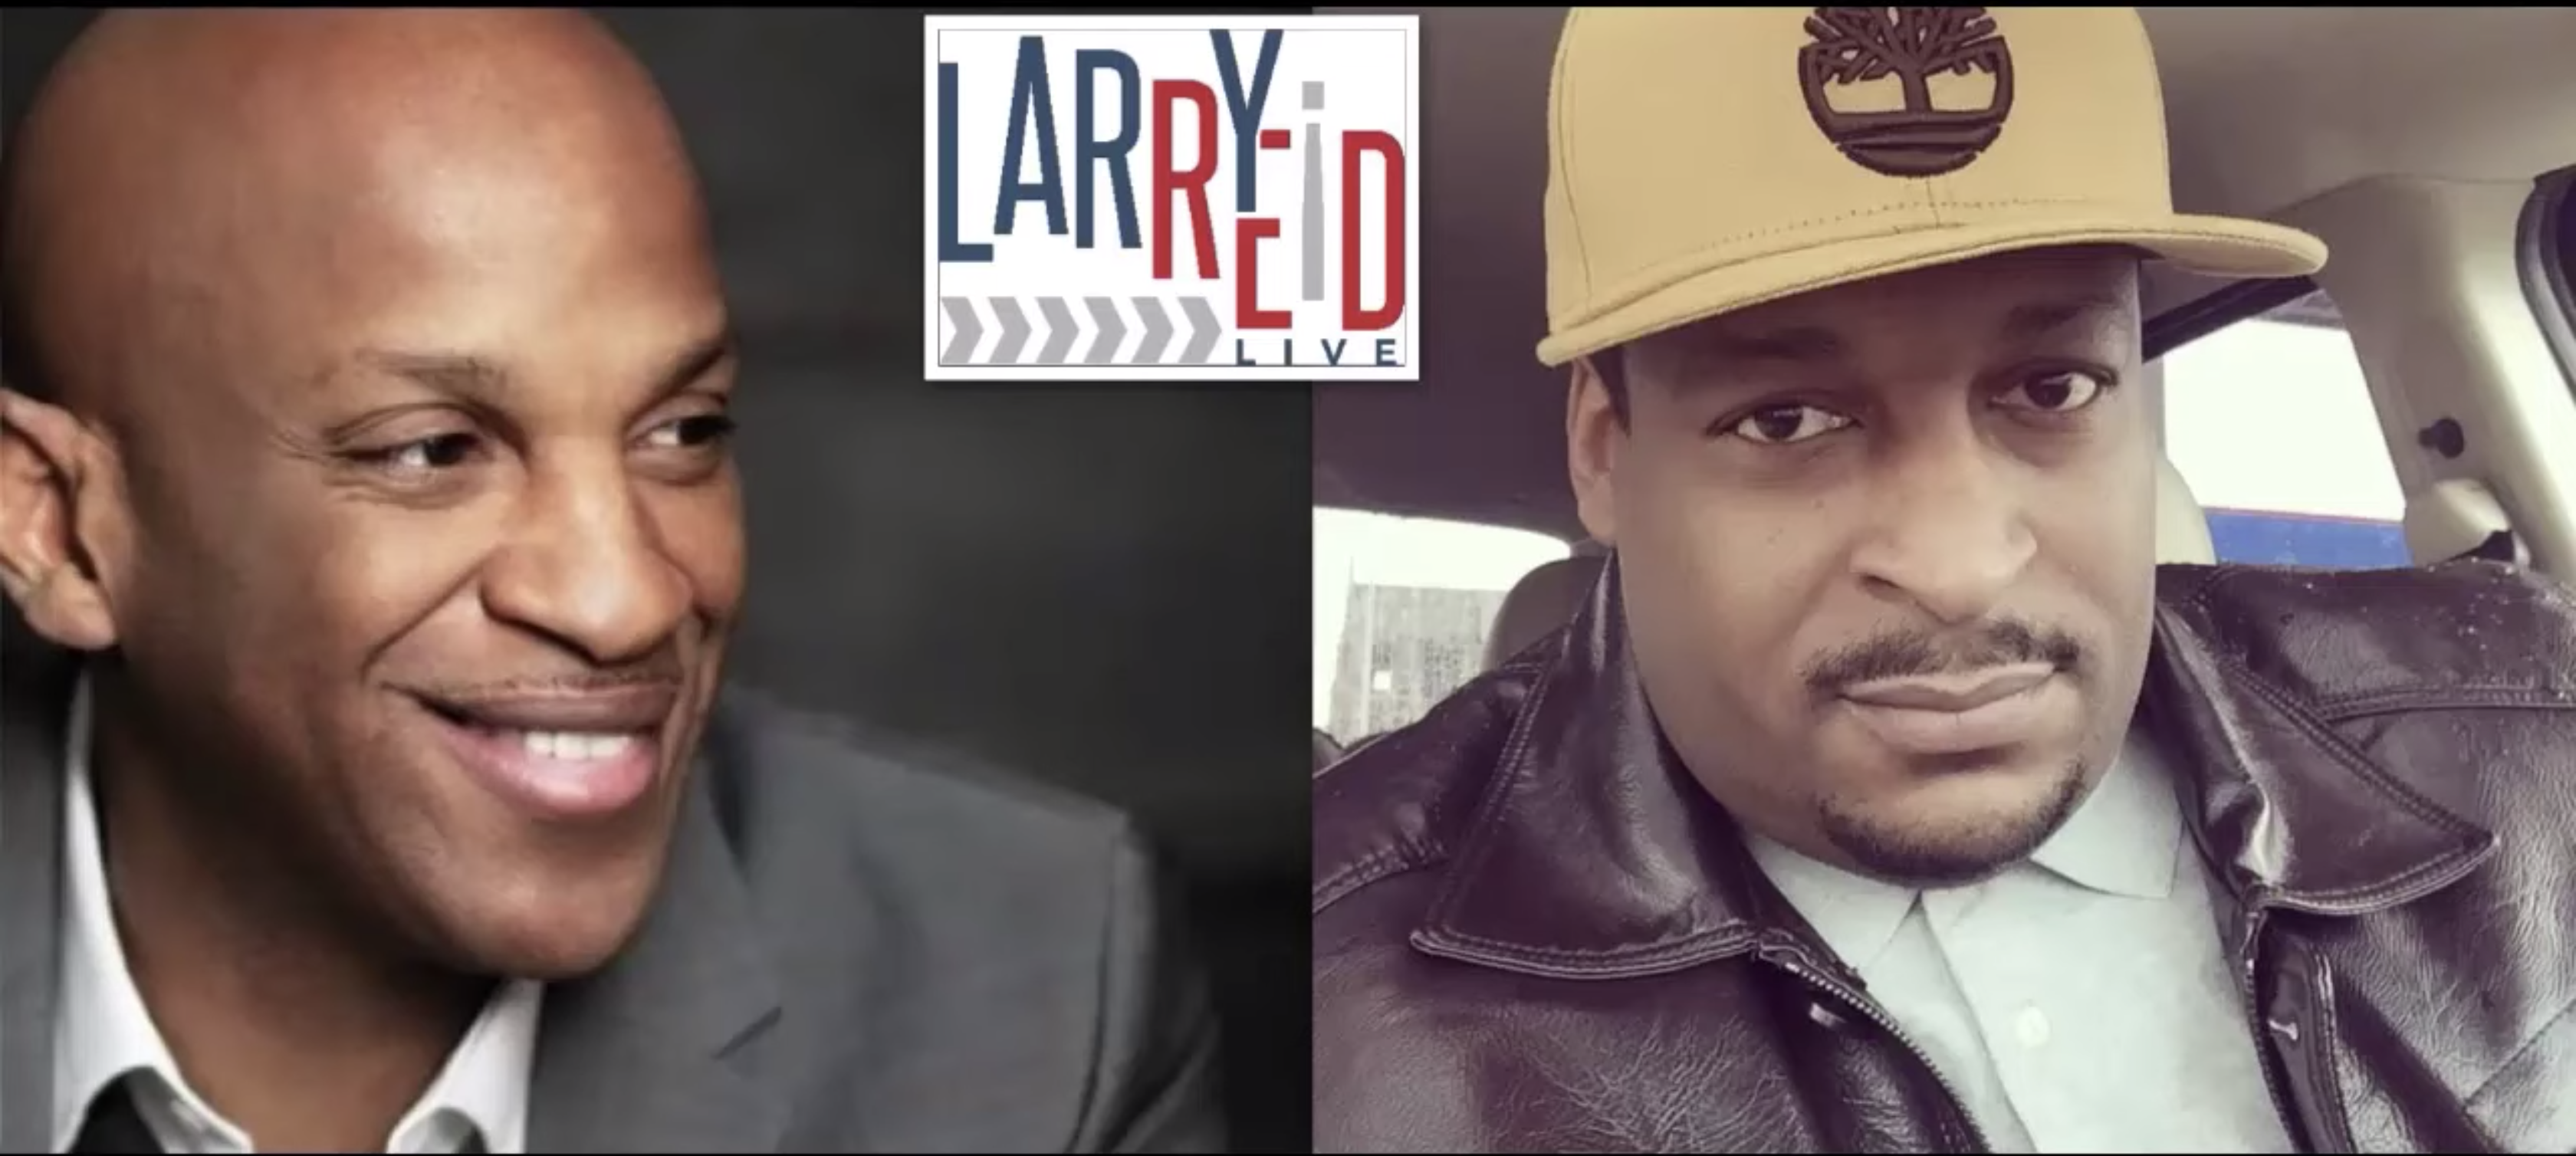 LRL 7.17.19 – Pt. 2 – Responding to Donnie McClurkin and Larry Clark